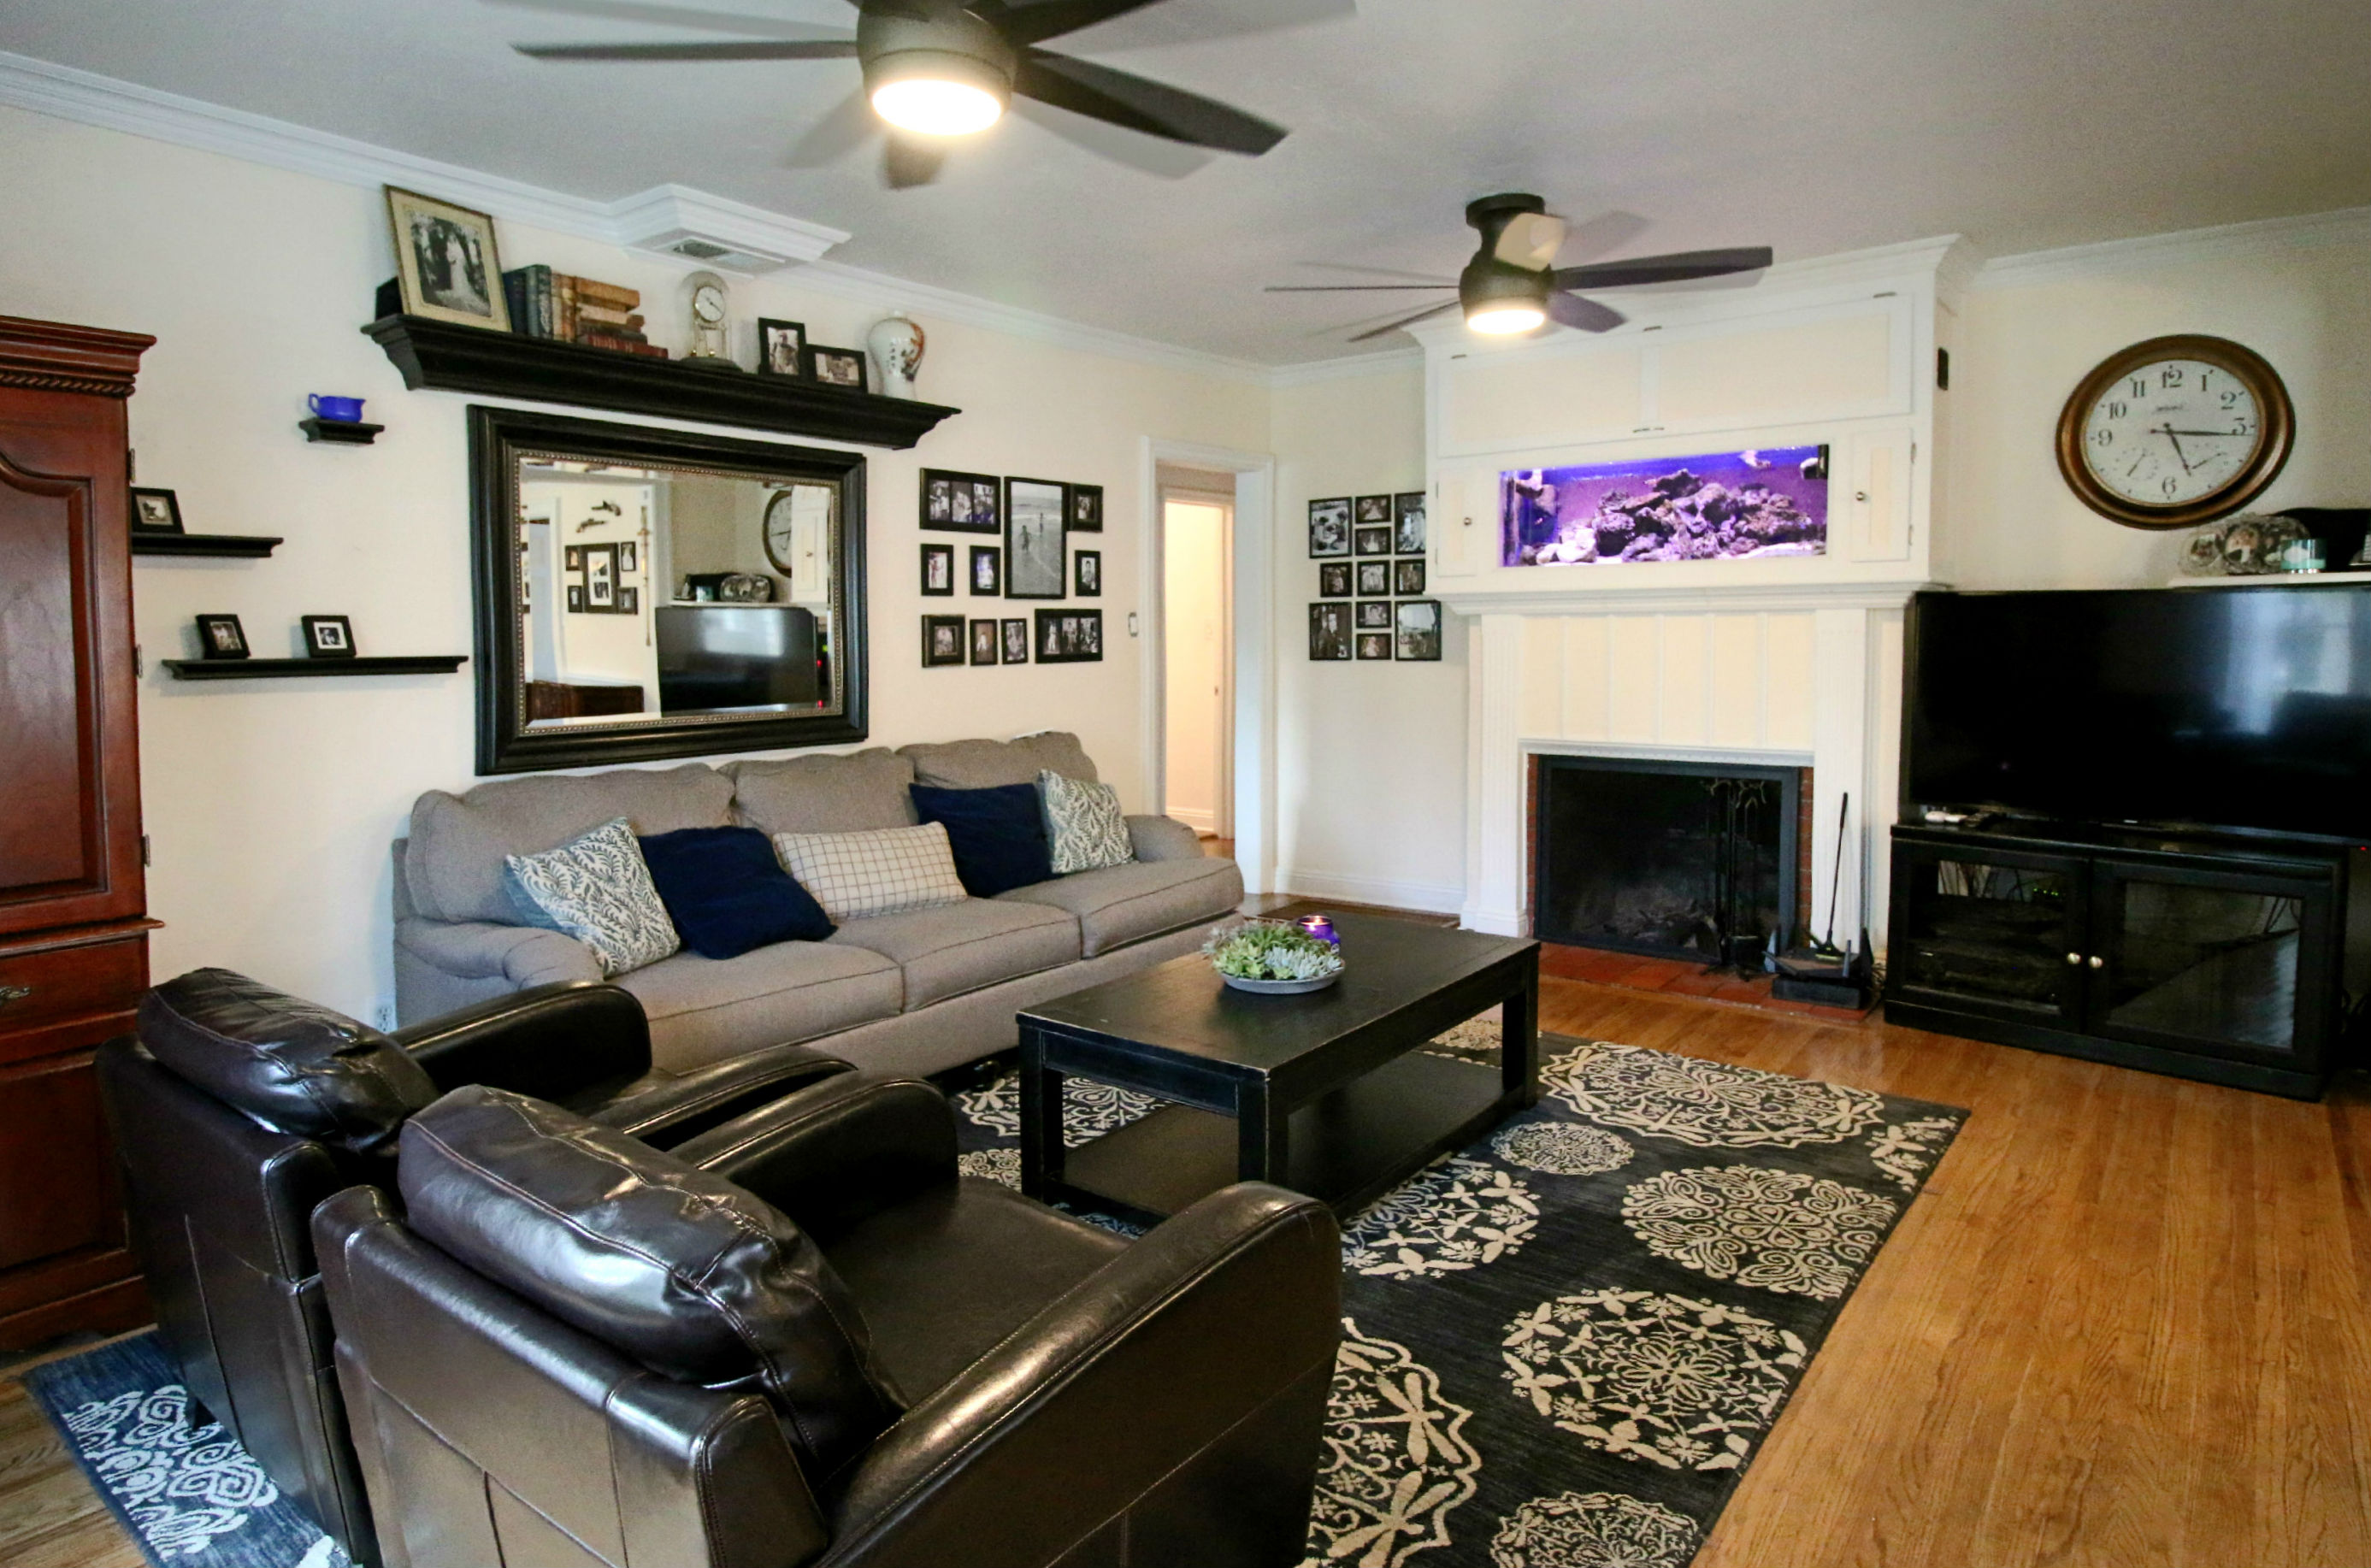 Refinished original hardwood floors throughout. Salt water fish tank above fireplace has been there 11 years and will stay with house if buyer wants it. If not, seller will remove and replace the fireplace mantel.